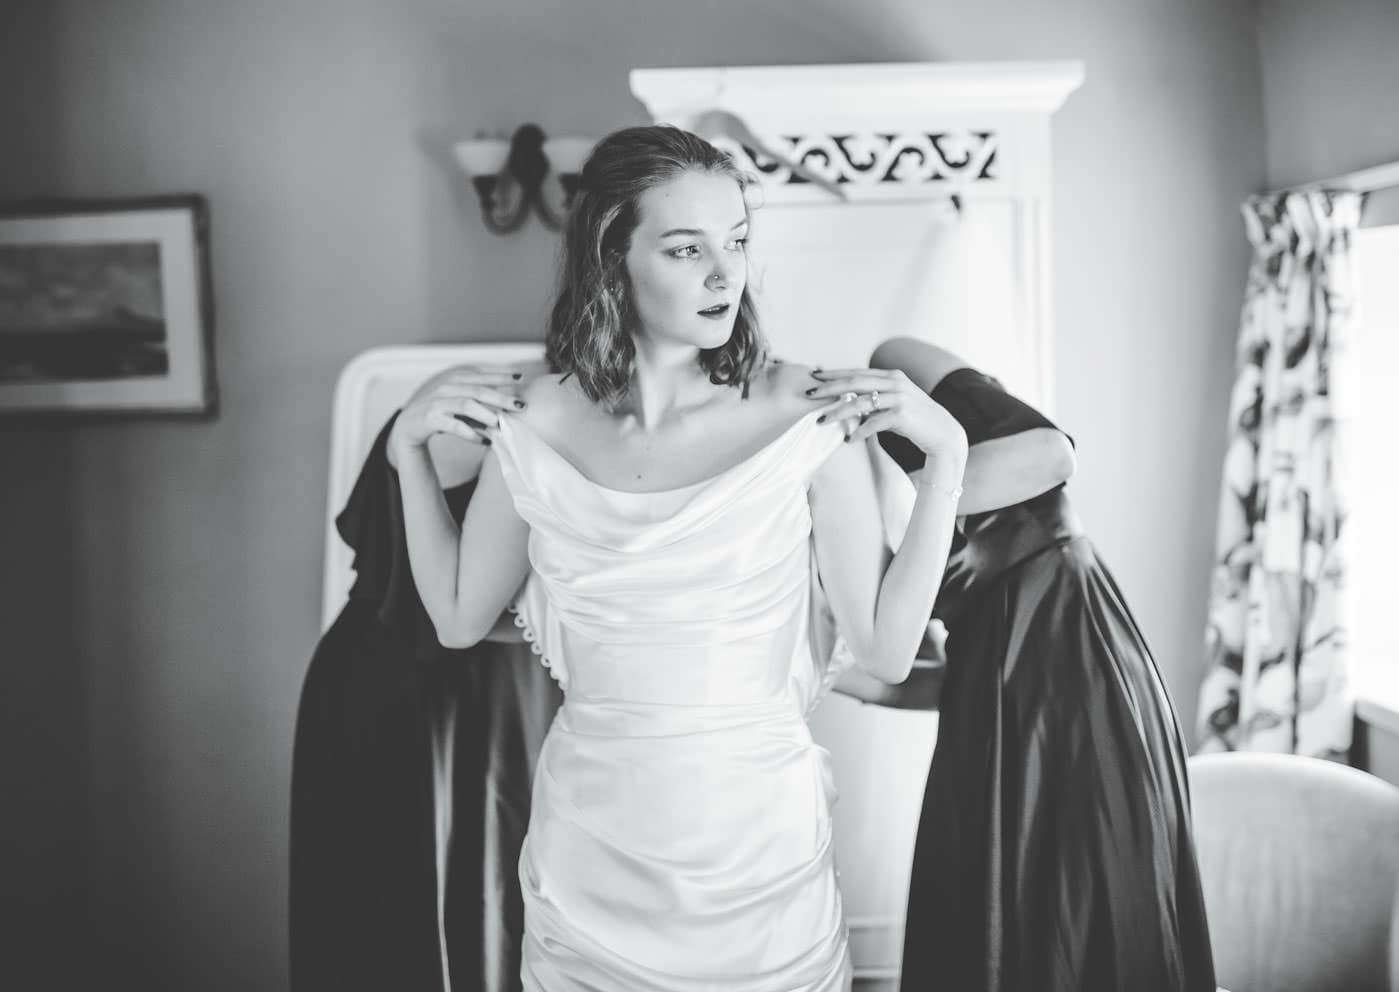 creative black and white wedding pictures at Browsholme Hall wedding